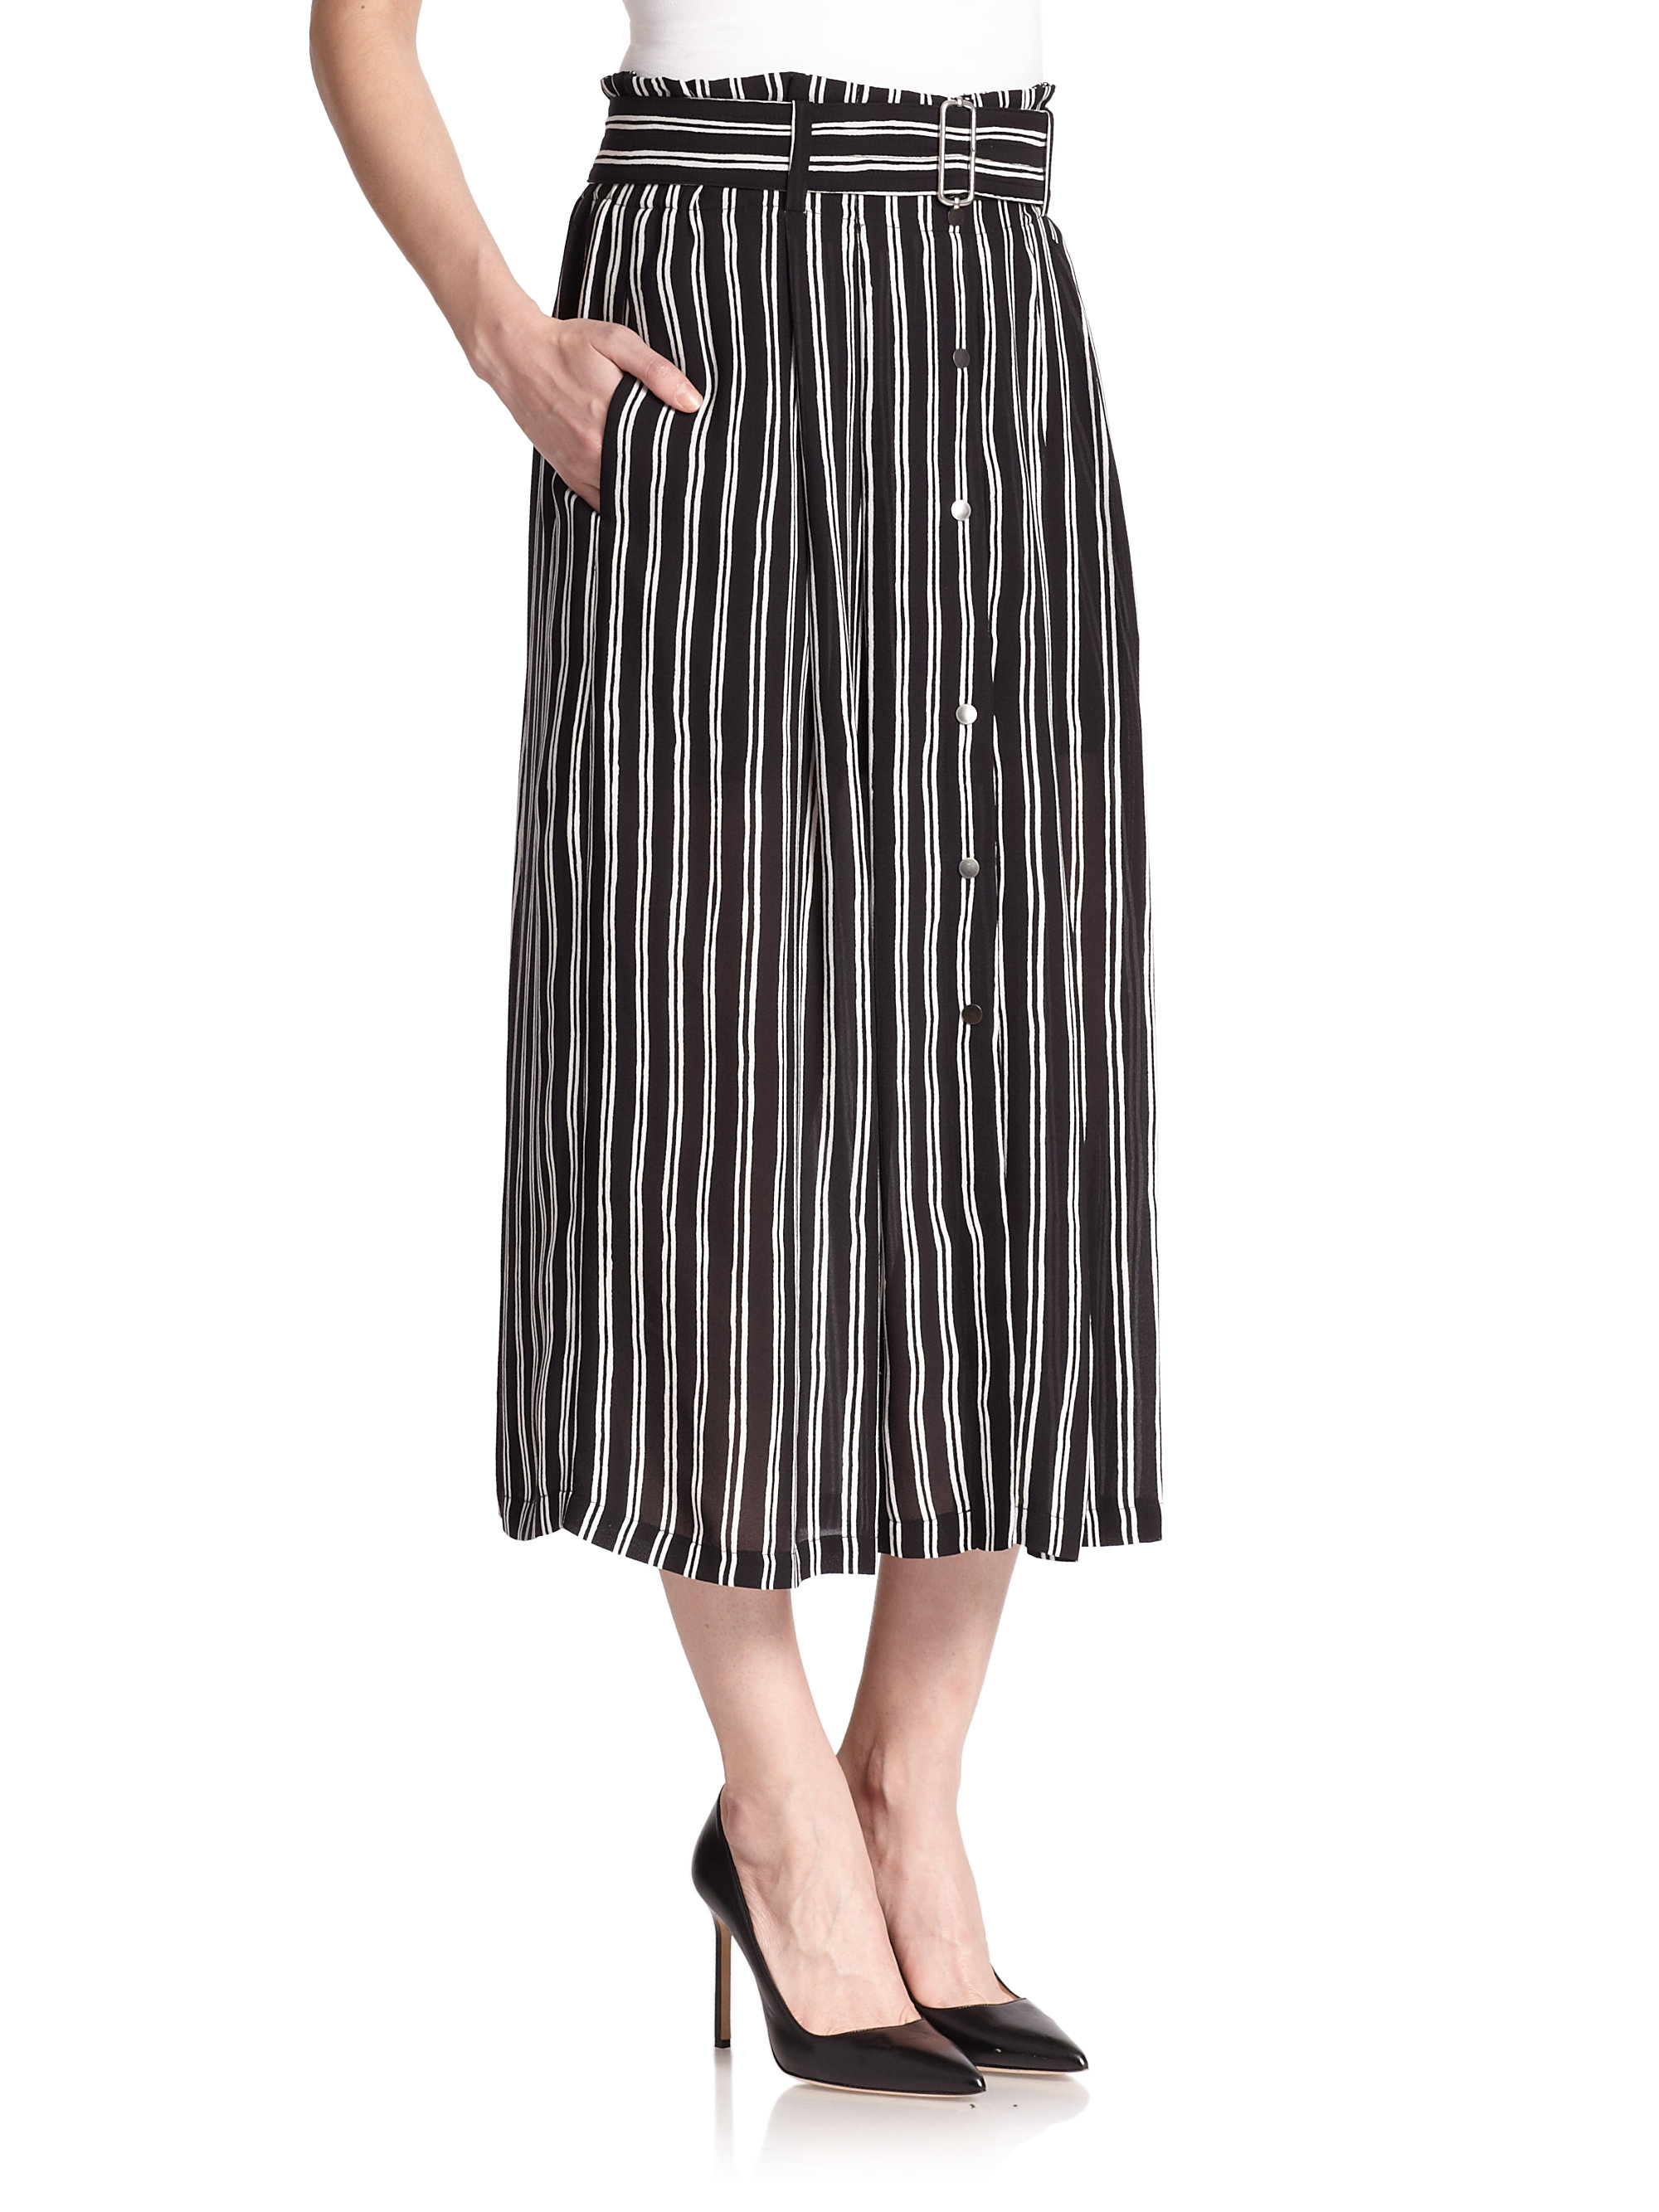 A.l.c. Mcdermott Striped Silk Midi Skirt in Black | Lyst